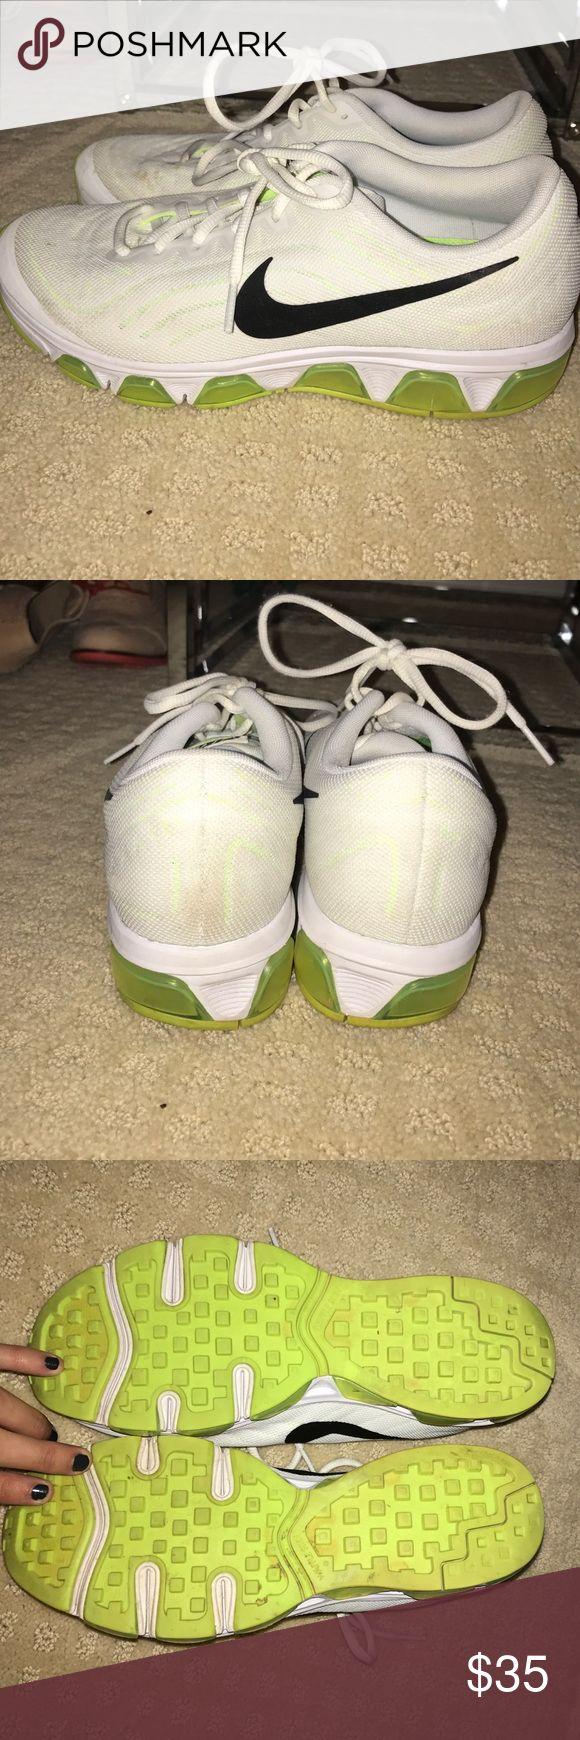 Nike Air Tailwind 6 Size 9. Worn a few times, but are in good condition. There are a couple brown spots on the right shoe. I have not tried to remove the stain, but i'm sure it would come off easily if washed! Super comfy! Nike Shoes Sneakers